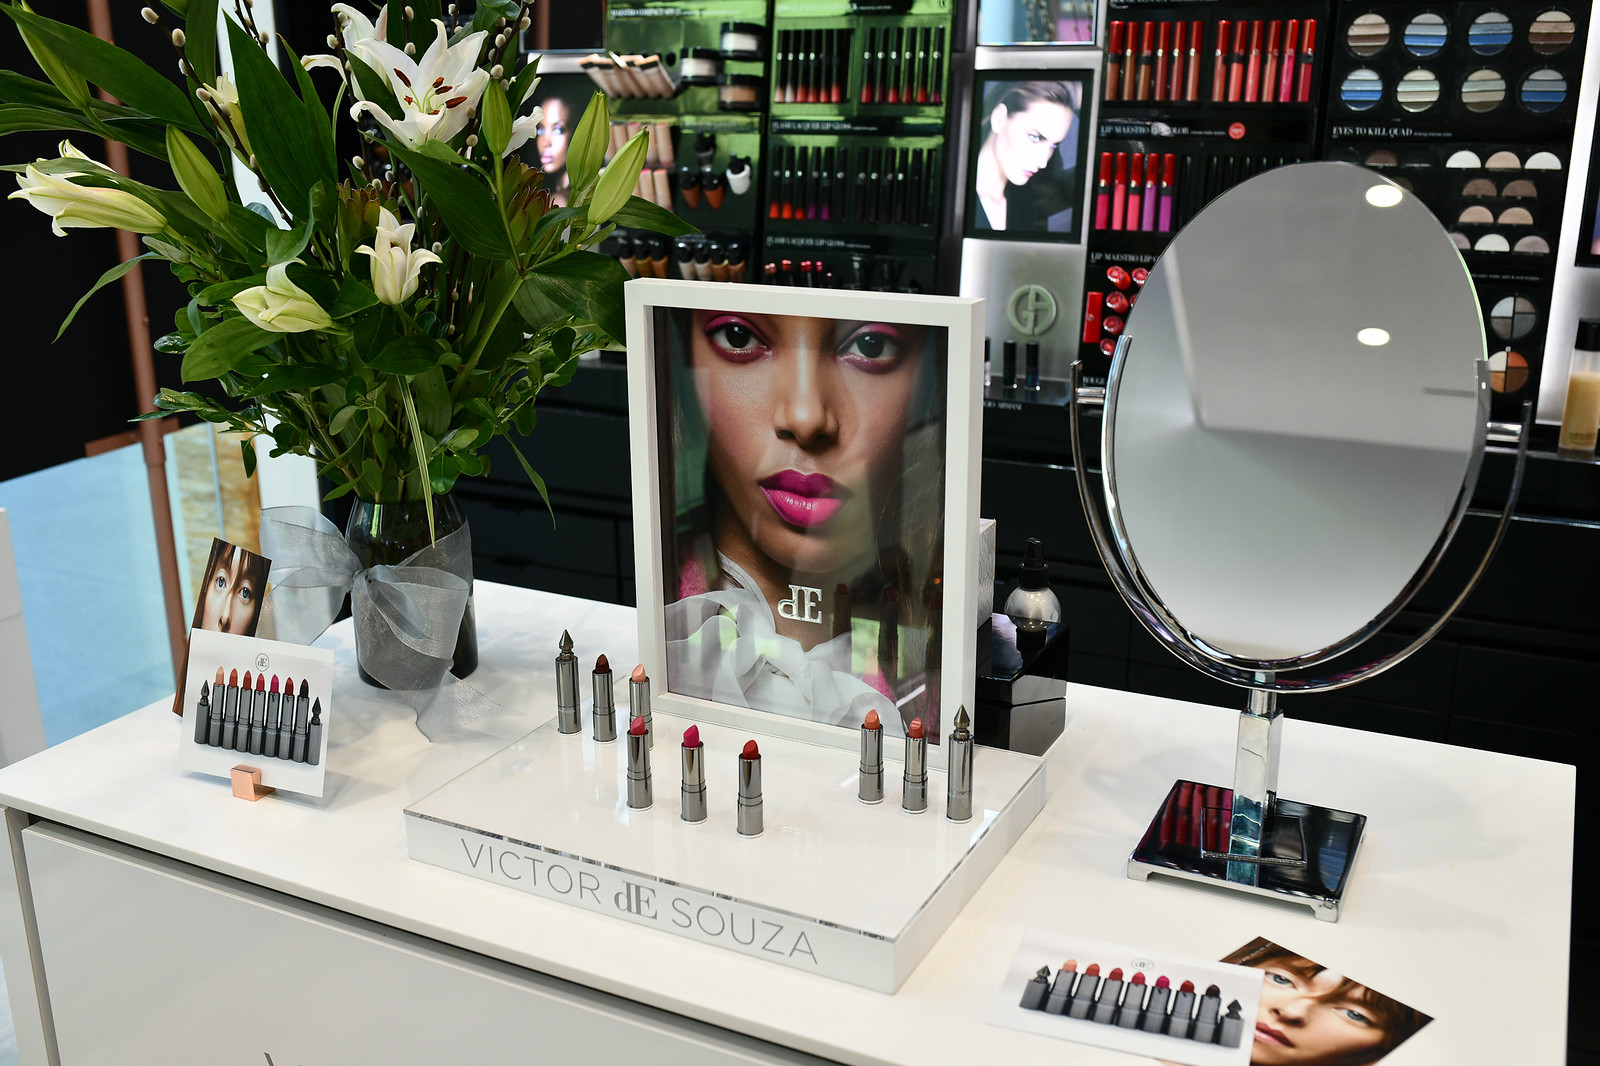 COS BAR x VICTOR dE SOUZA Beauty Launch